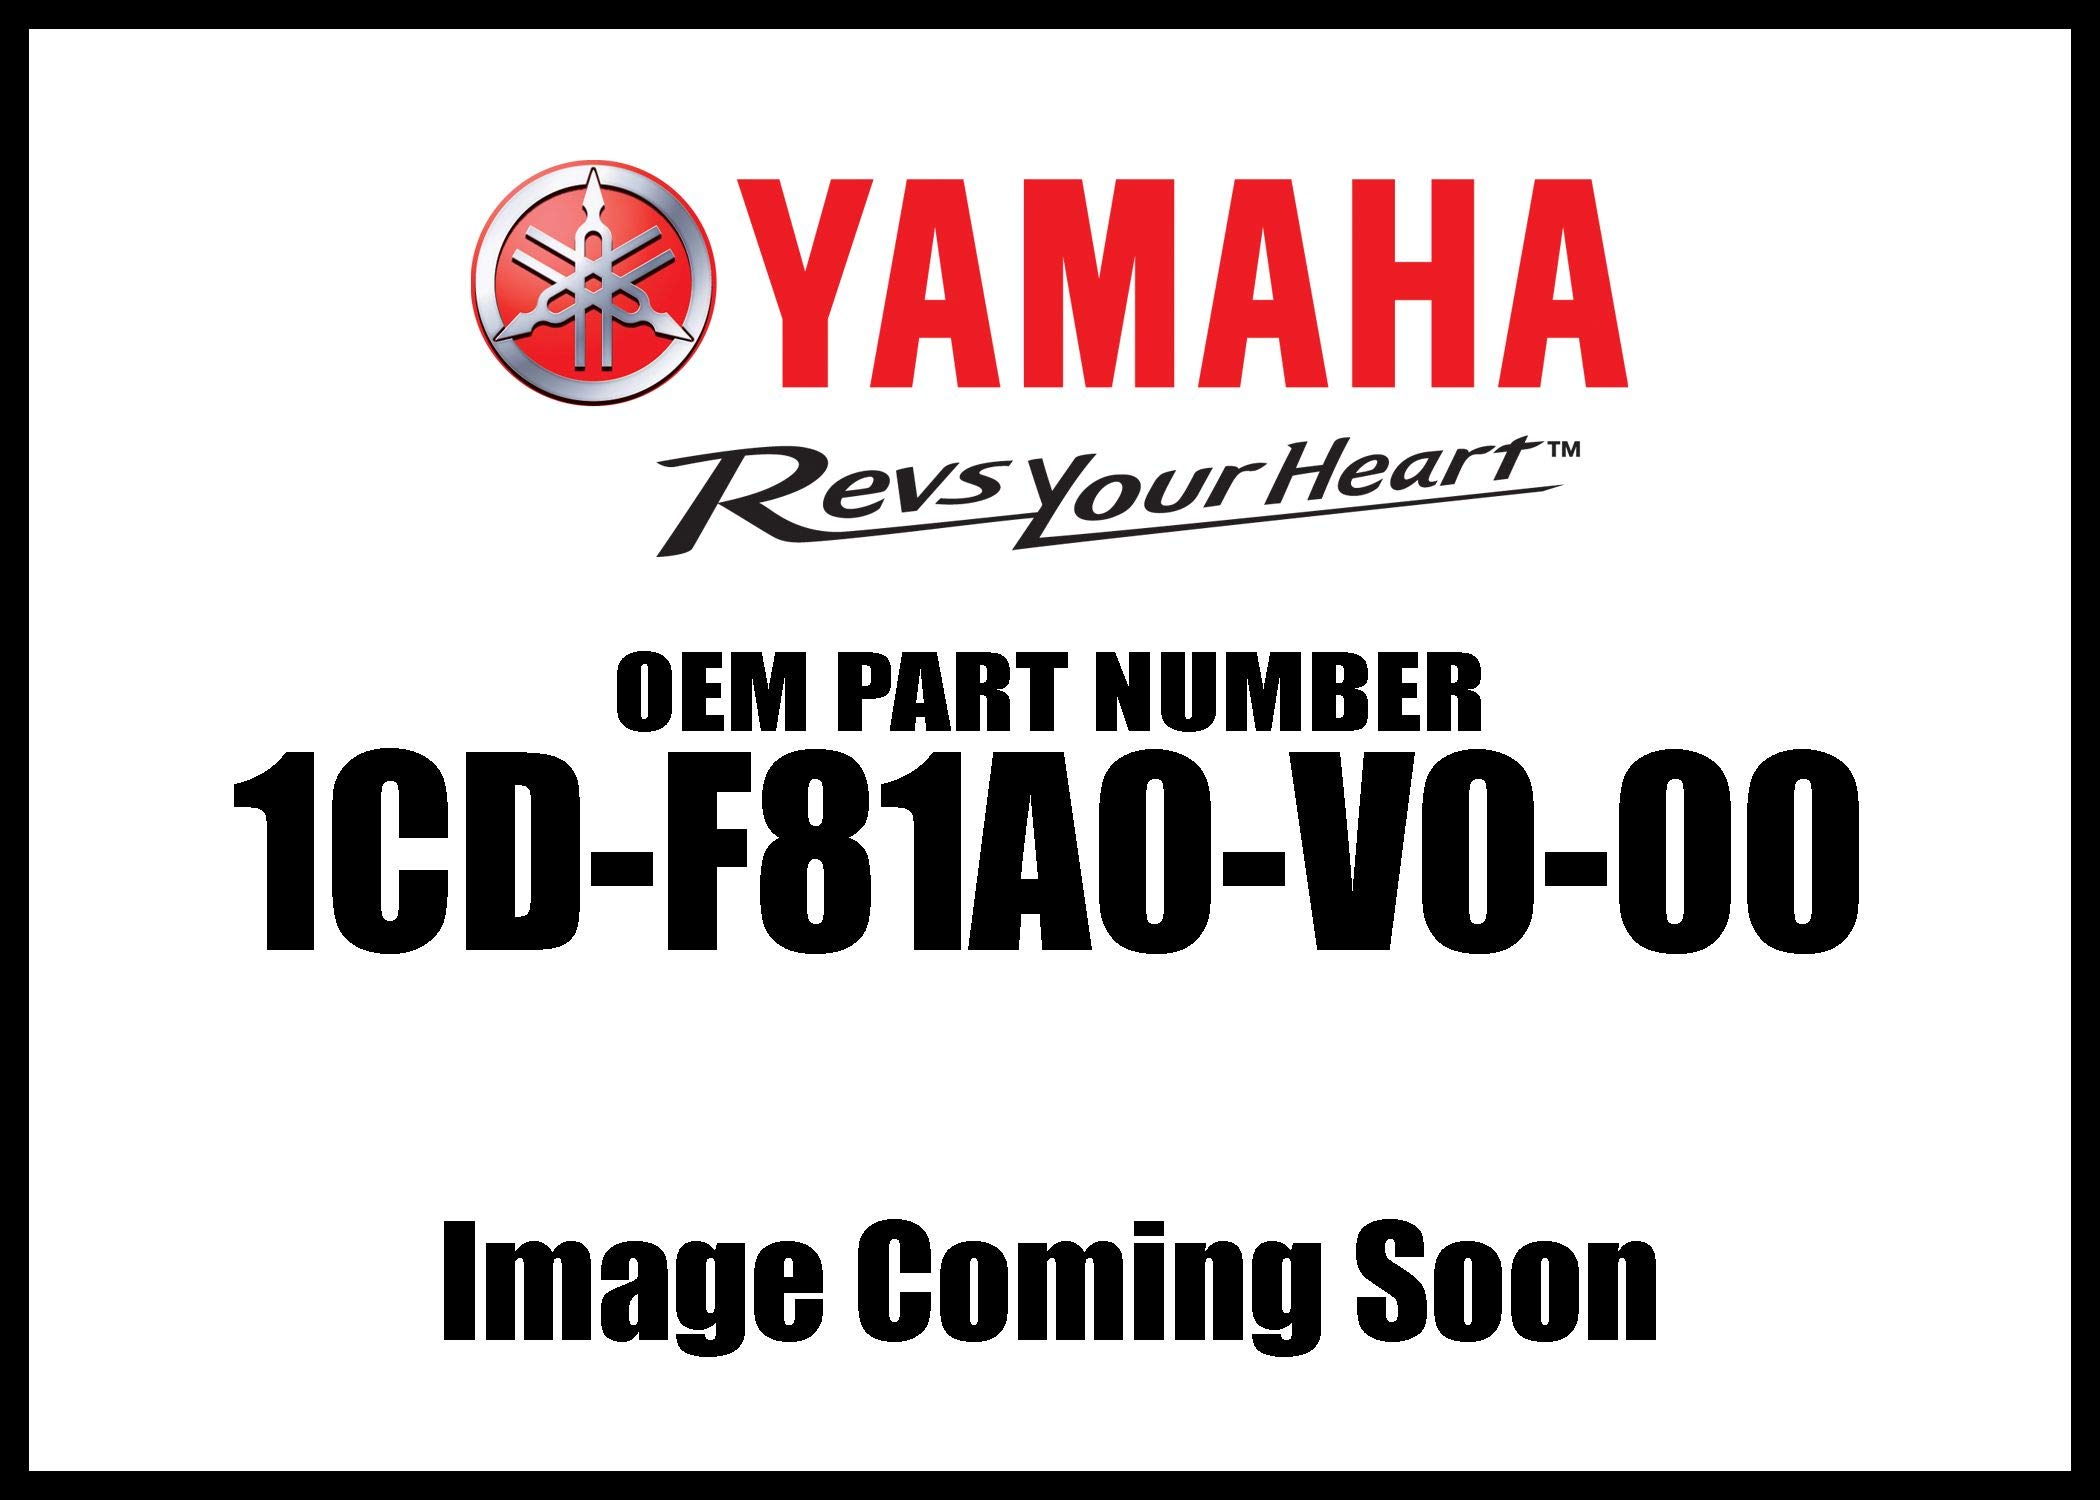 Yamaha 1CD-F81A0-V0-00 Storage Cover for Yamaha Zuma 125 by YAMAHA